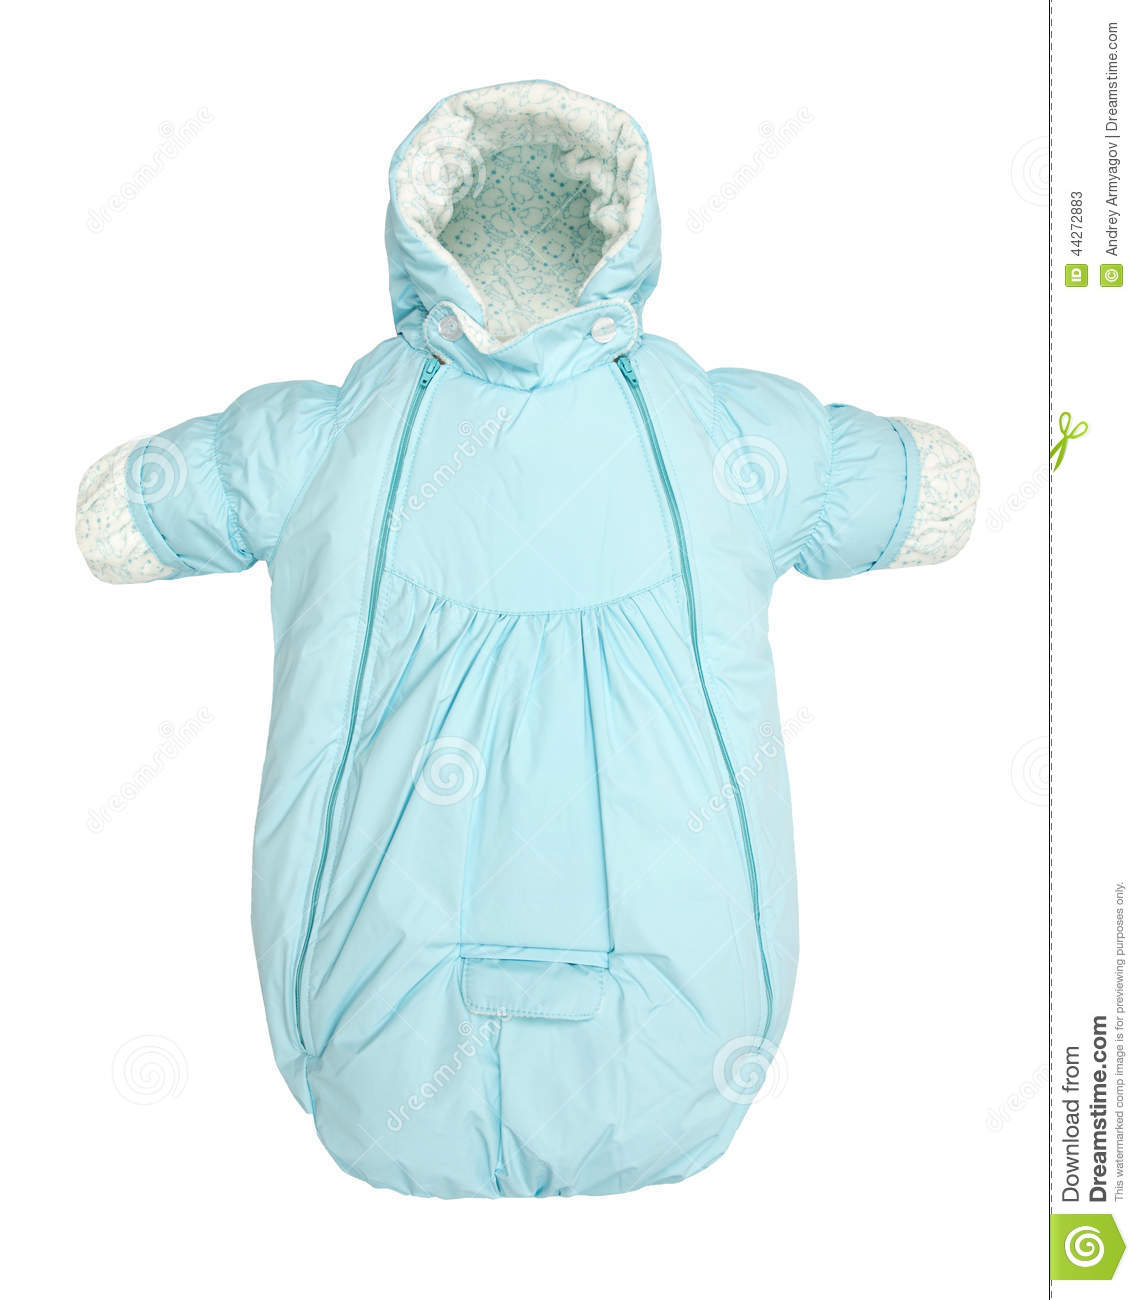 Newborn Infant Baby Girl Boy Puffer Carbag Pram Bag Snowsuit Bunting $ 39 95 Prime. out of 5 stars JELEUON. Baby Girls Two Piece Winter Warm Hooded Fur Trim Snowsuit Puffer Down Jacket with Snow Ski Bib Pants Outfits $ 62 99 Prime. 5 out of 5 stars 2. U.S. Polo Assn. Baby Girls' Pram (More Styles Available).